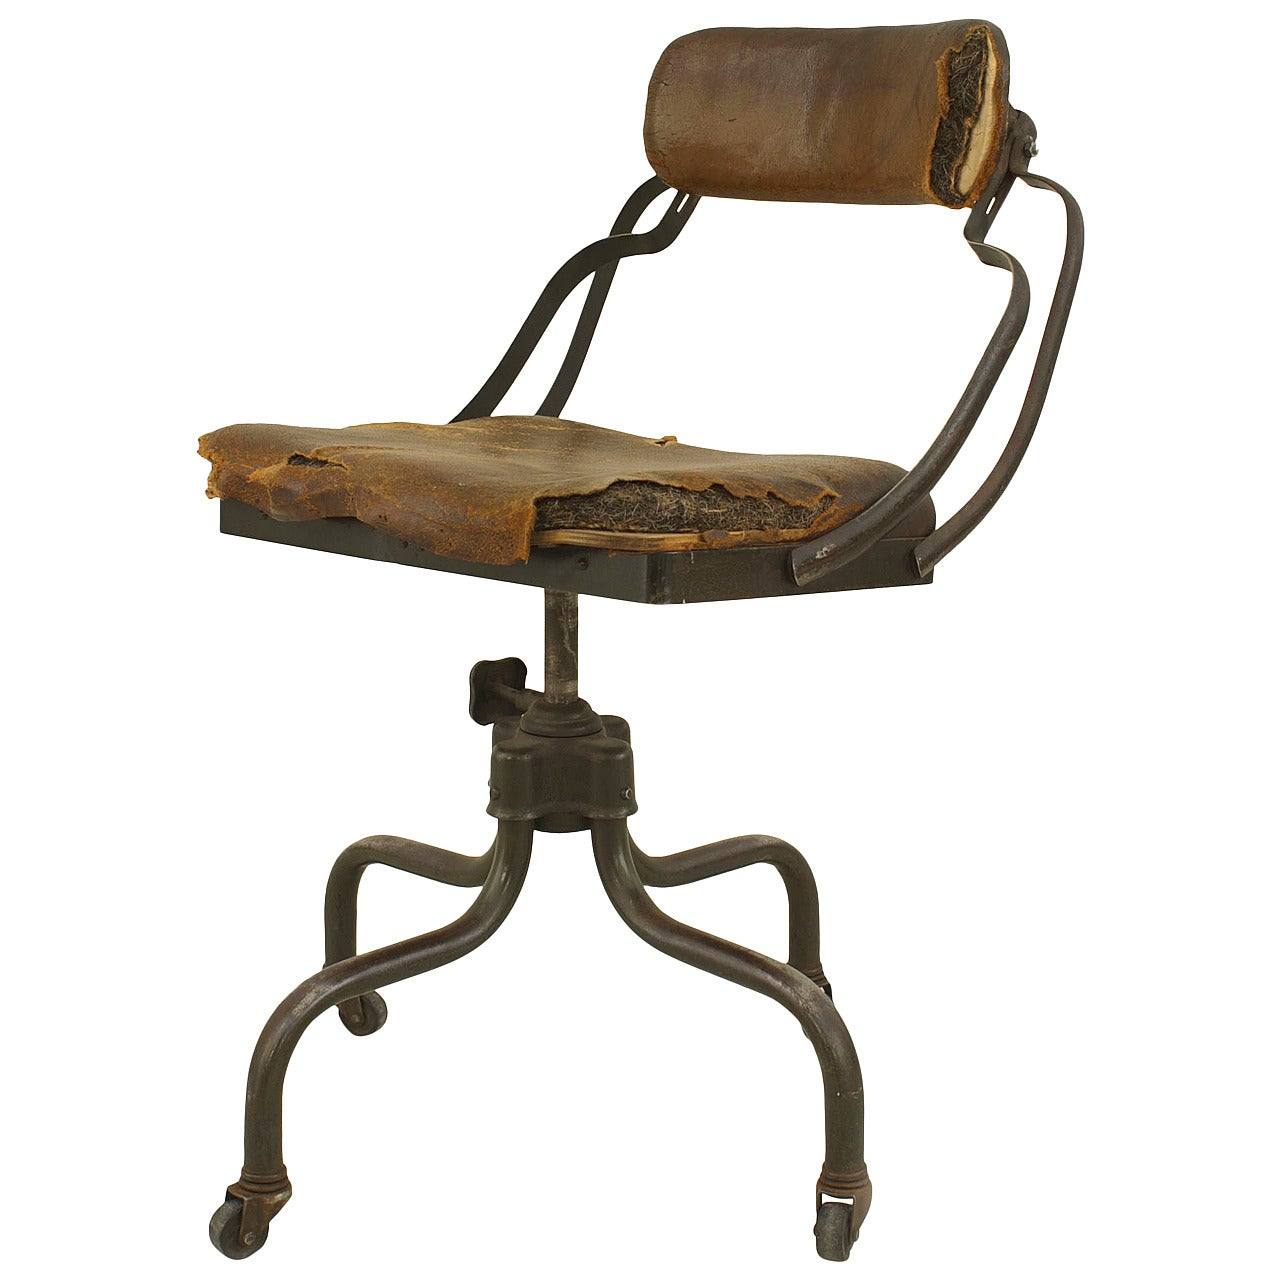 Early 20th Century American Metal and Leather Office Chair